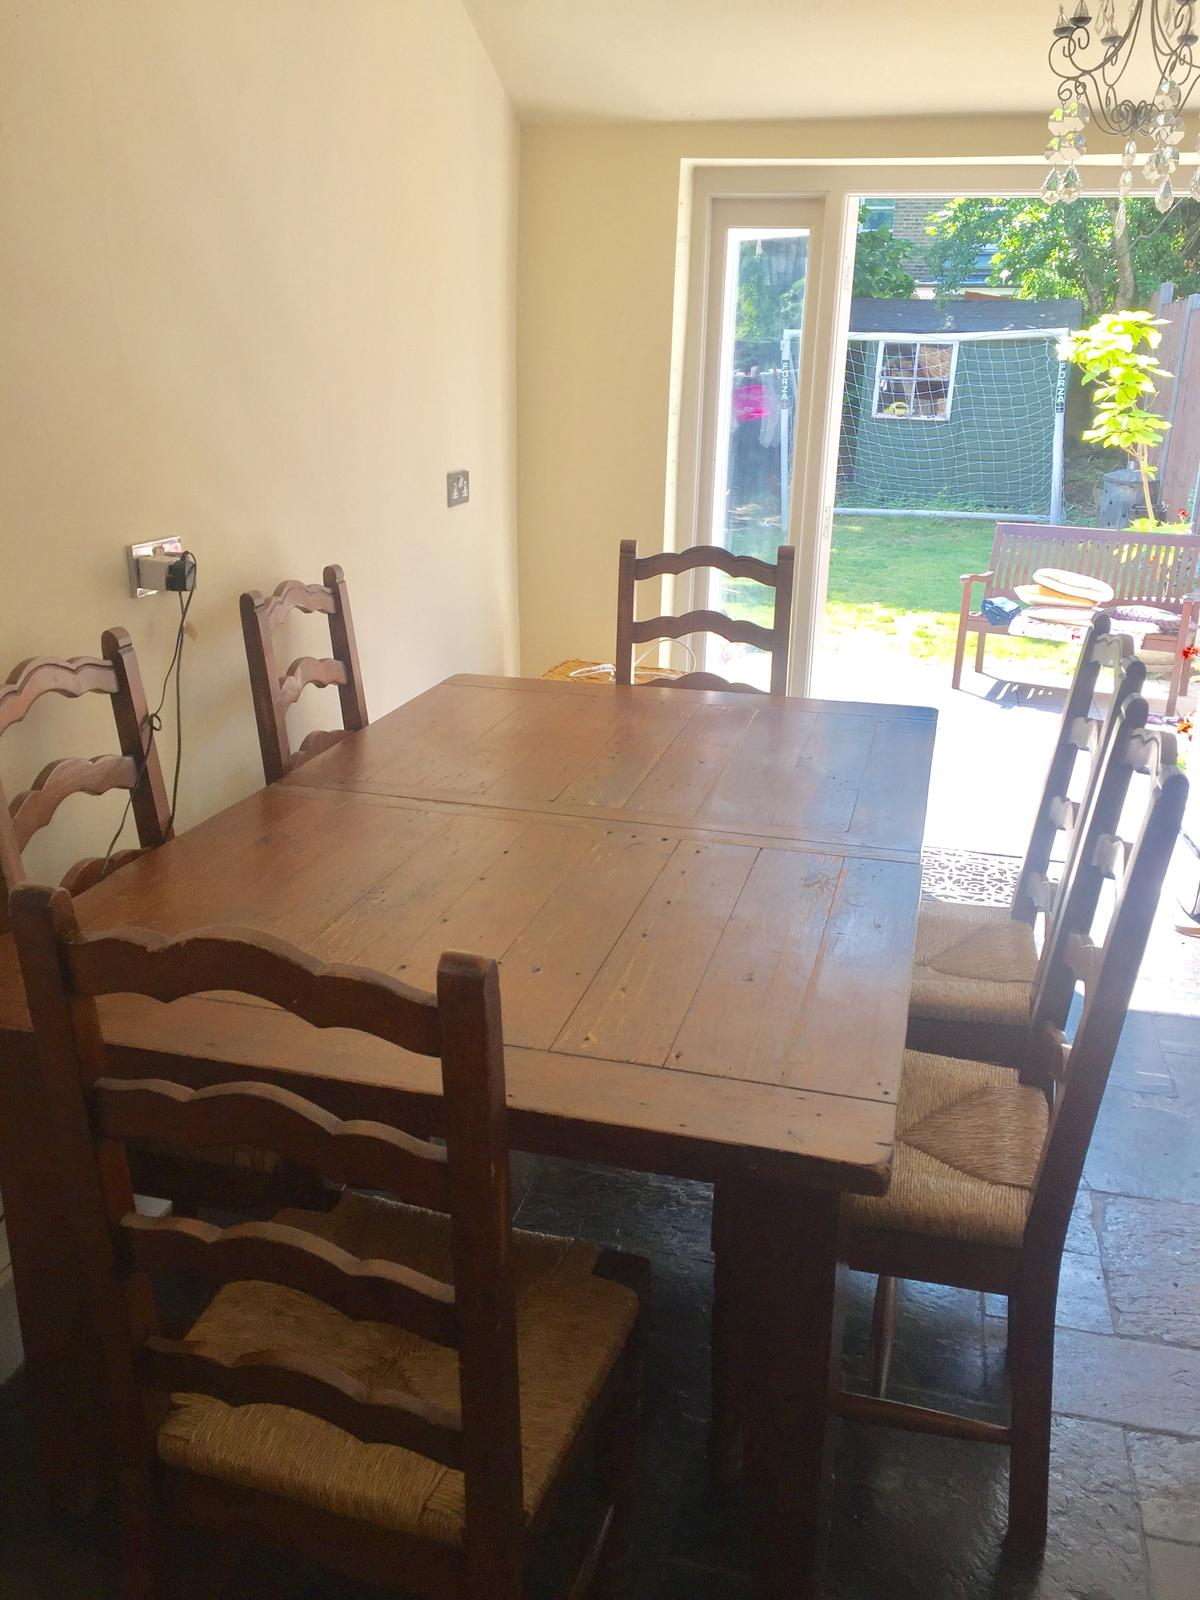 Dining Table And Six Chairs In N2 London Fur 150 00 Zum Verkauf Shpock De